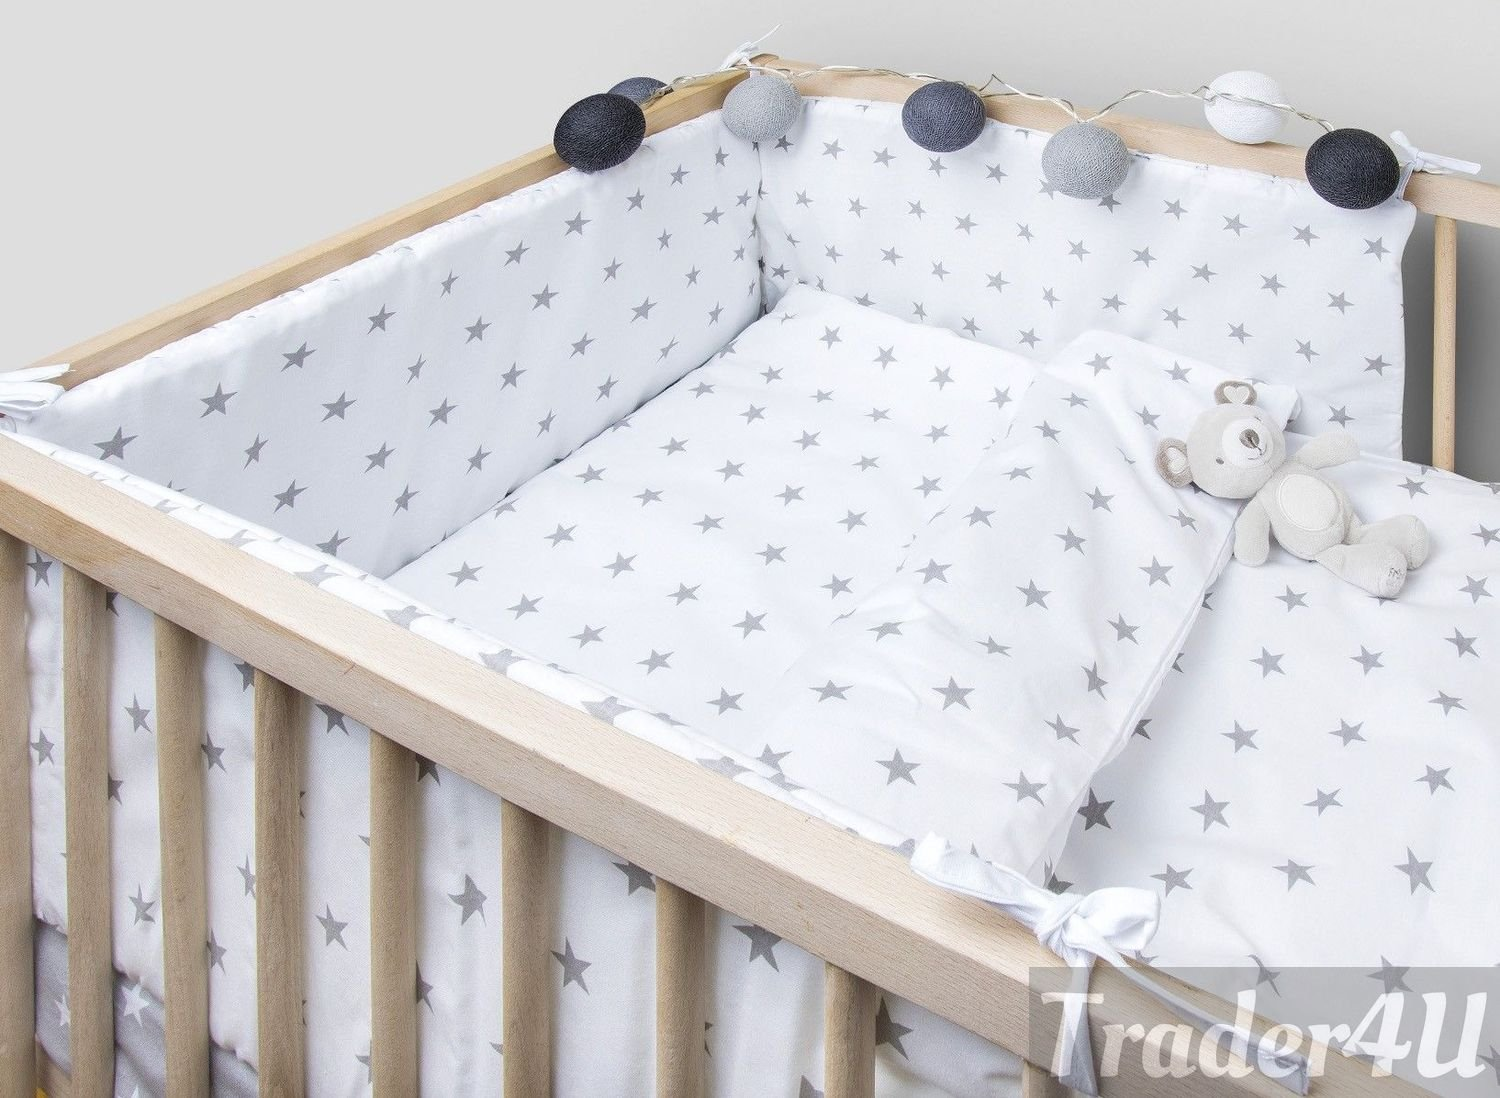 Fit to Cot Bed 140x70 cm, White Elephants on Grey MillaLu 5 Pcs Baby Nursery Bedding Set fit to Cot 120x60cm or Cot Bed 140x70cm Padded Bumper